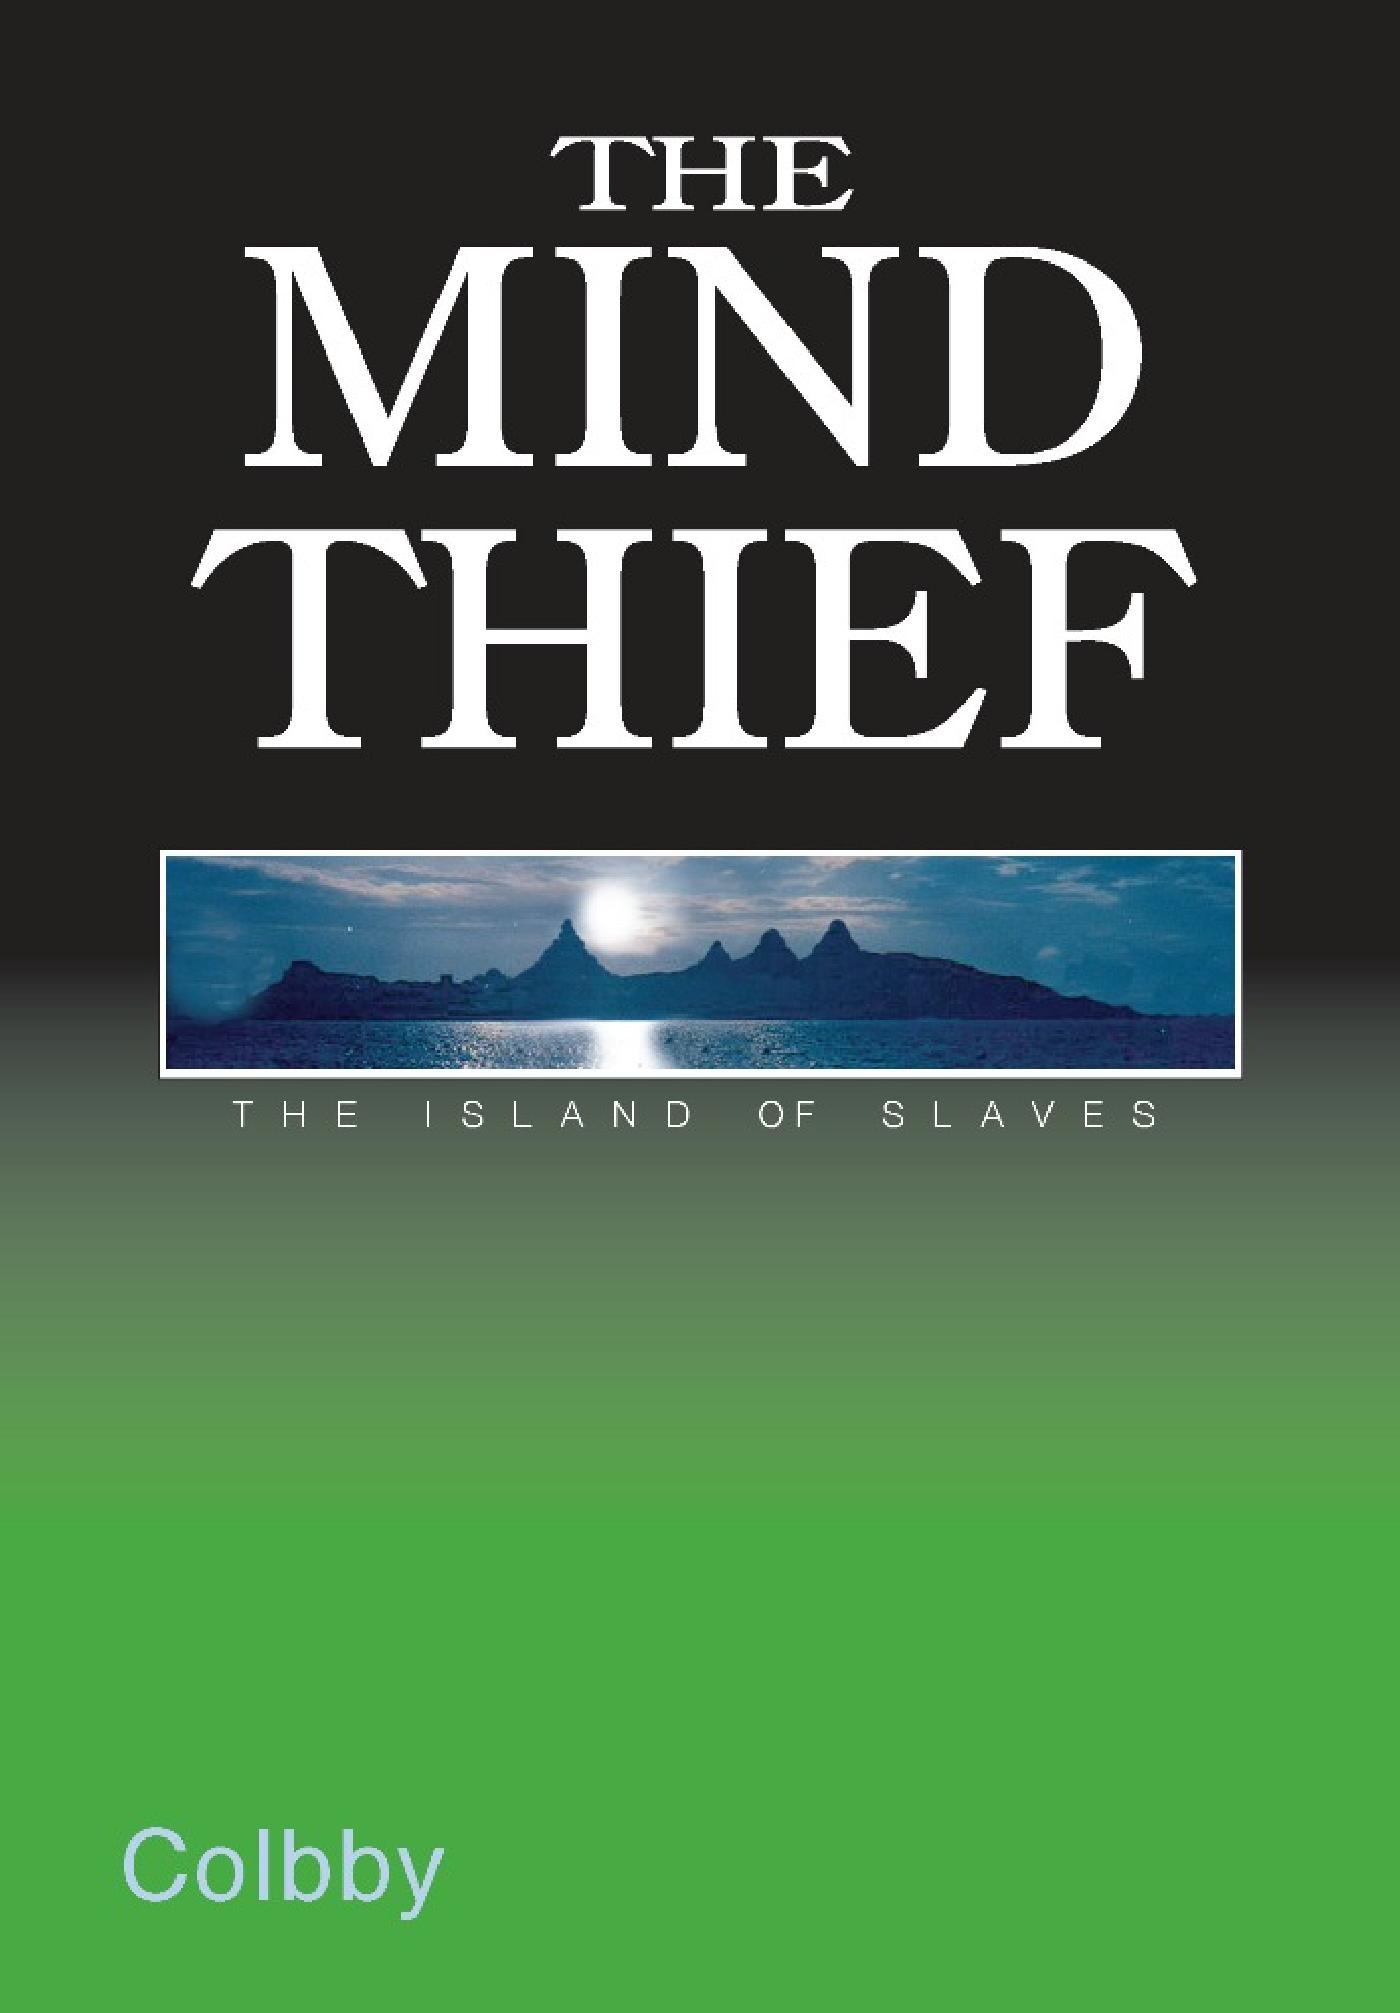 THE MIND THIEF